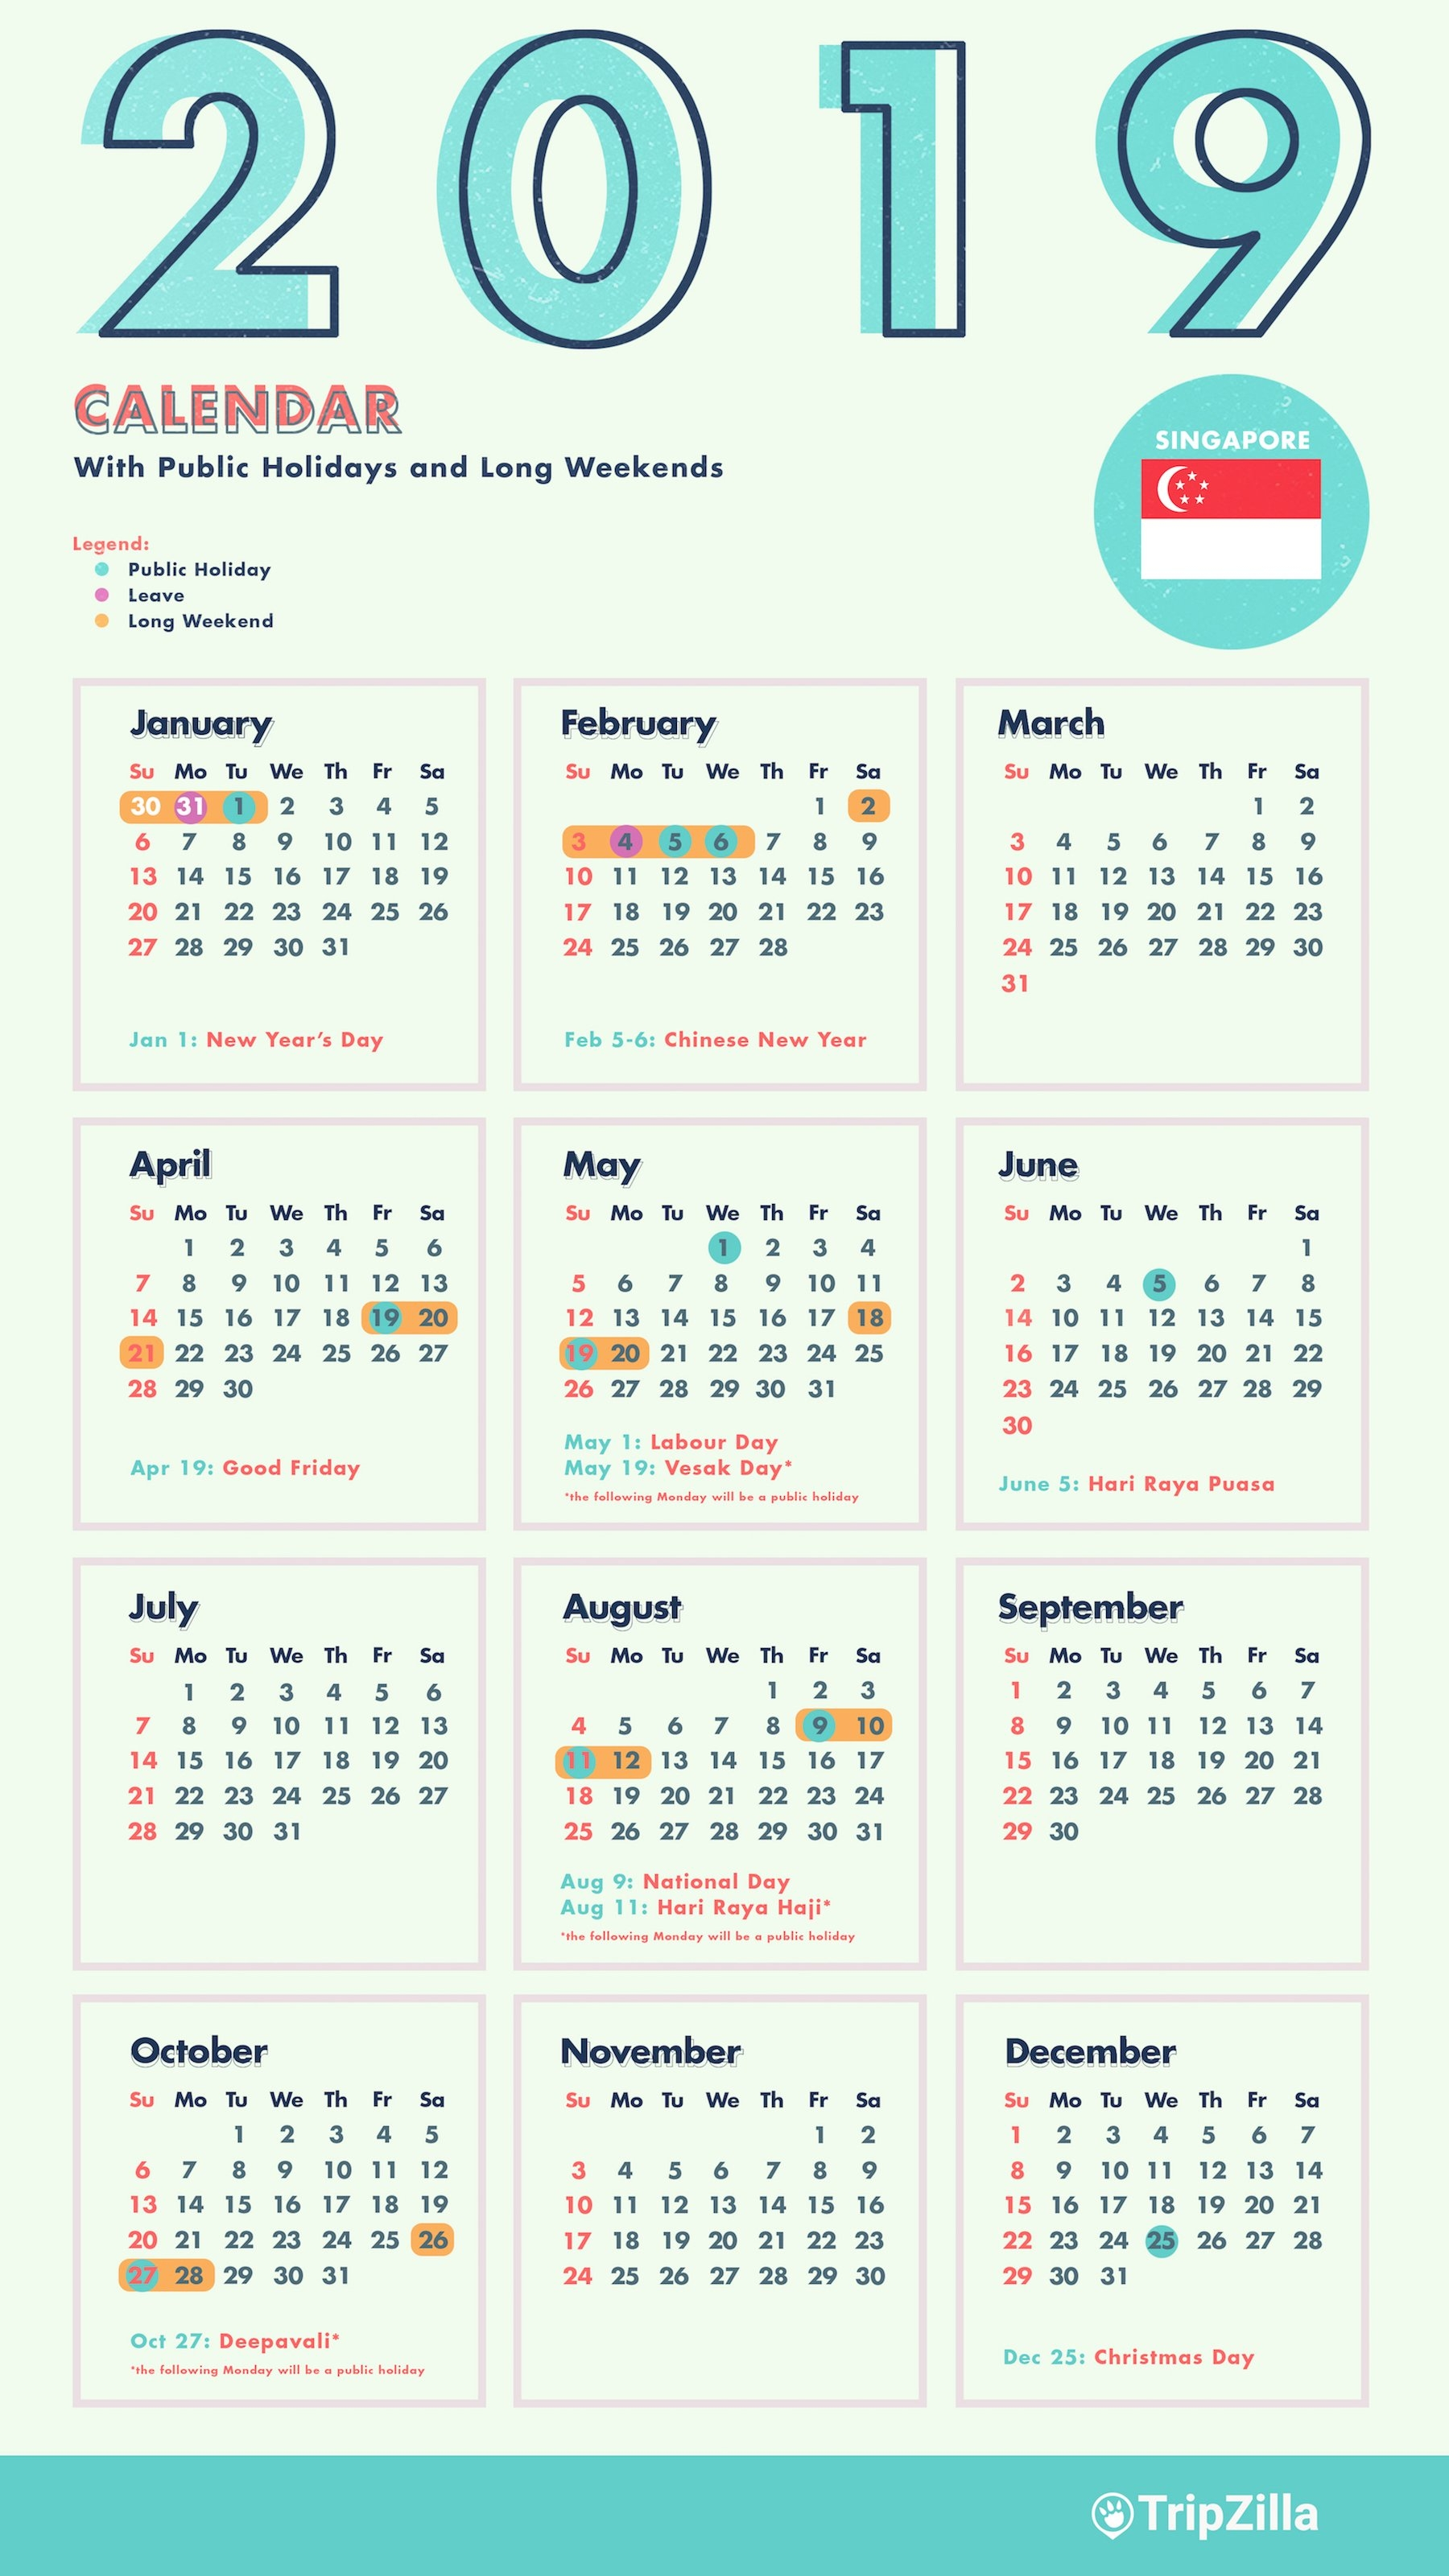 6 Long Weekends In Singapore In 2019 (Bonus Calendar & Cheatsheet) Calendar 2019 National Holidays